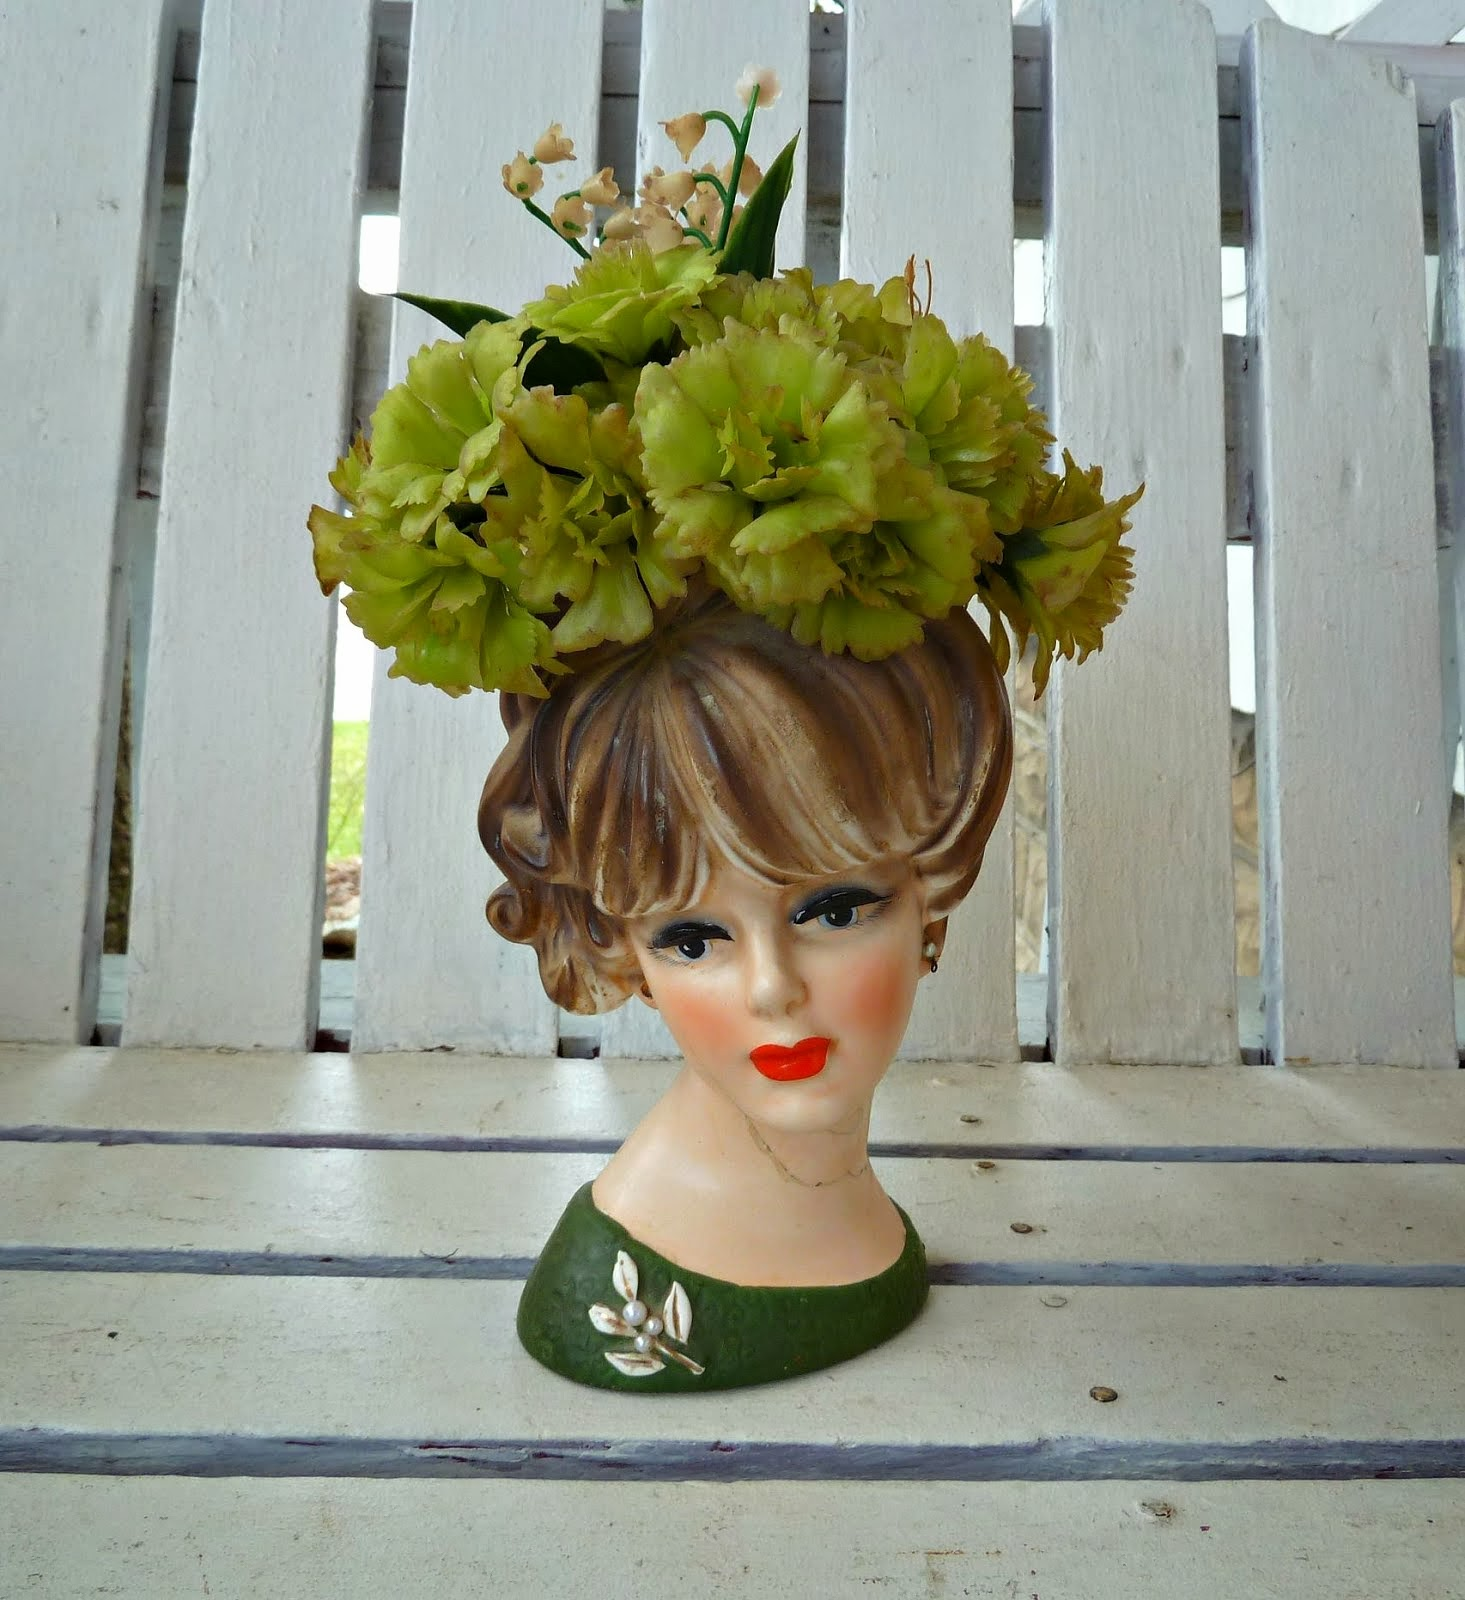 Old glory cottage my weekend finds lady head vases reviewsmspy